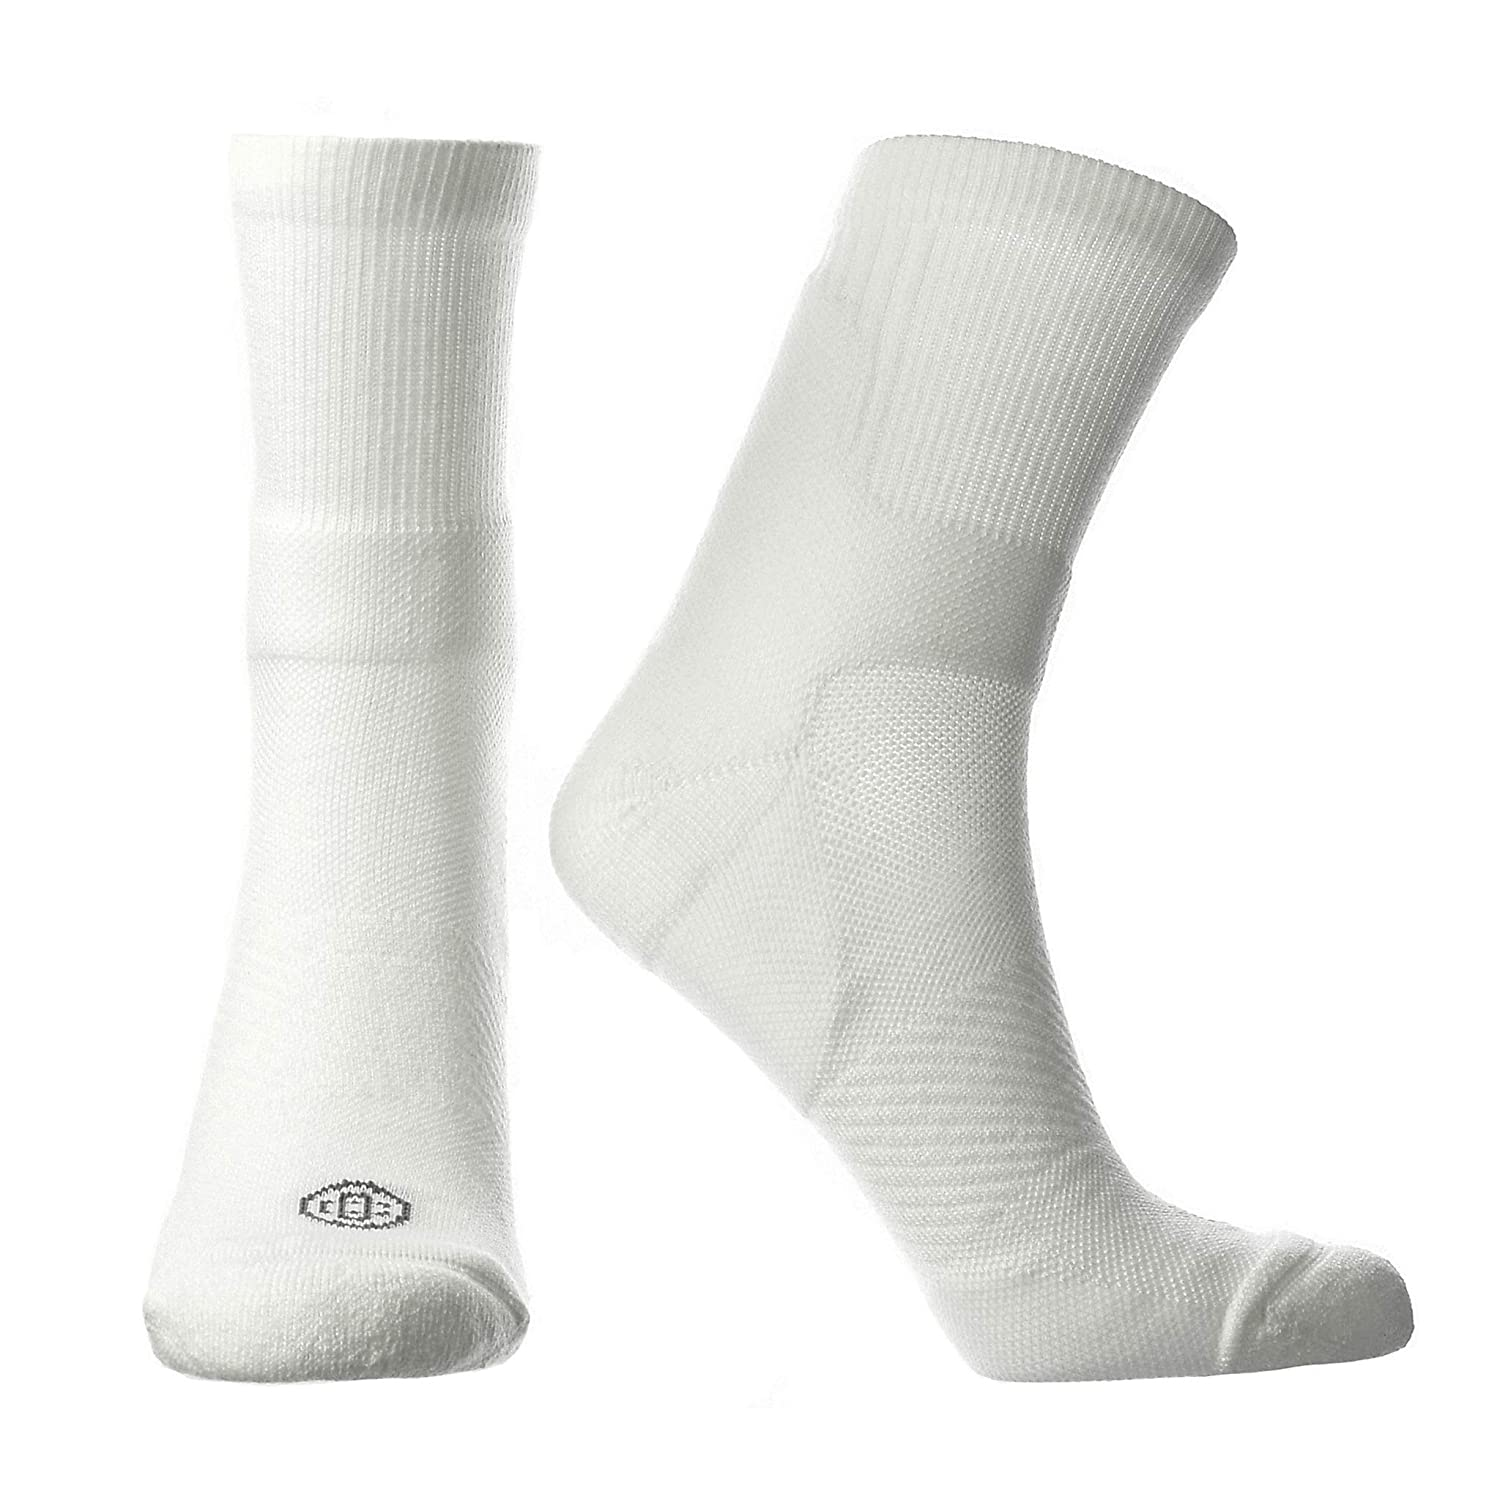 Doctor's Choice Compression Low excellence Calf Plantar Socks shop Crew Fasciit